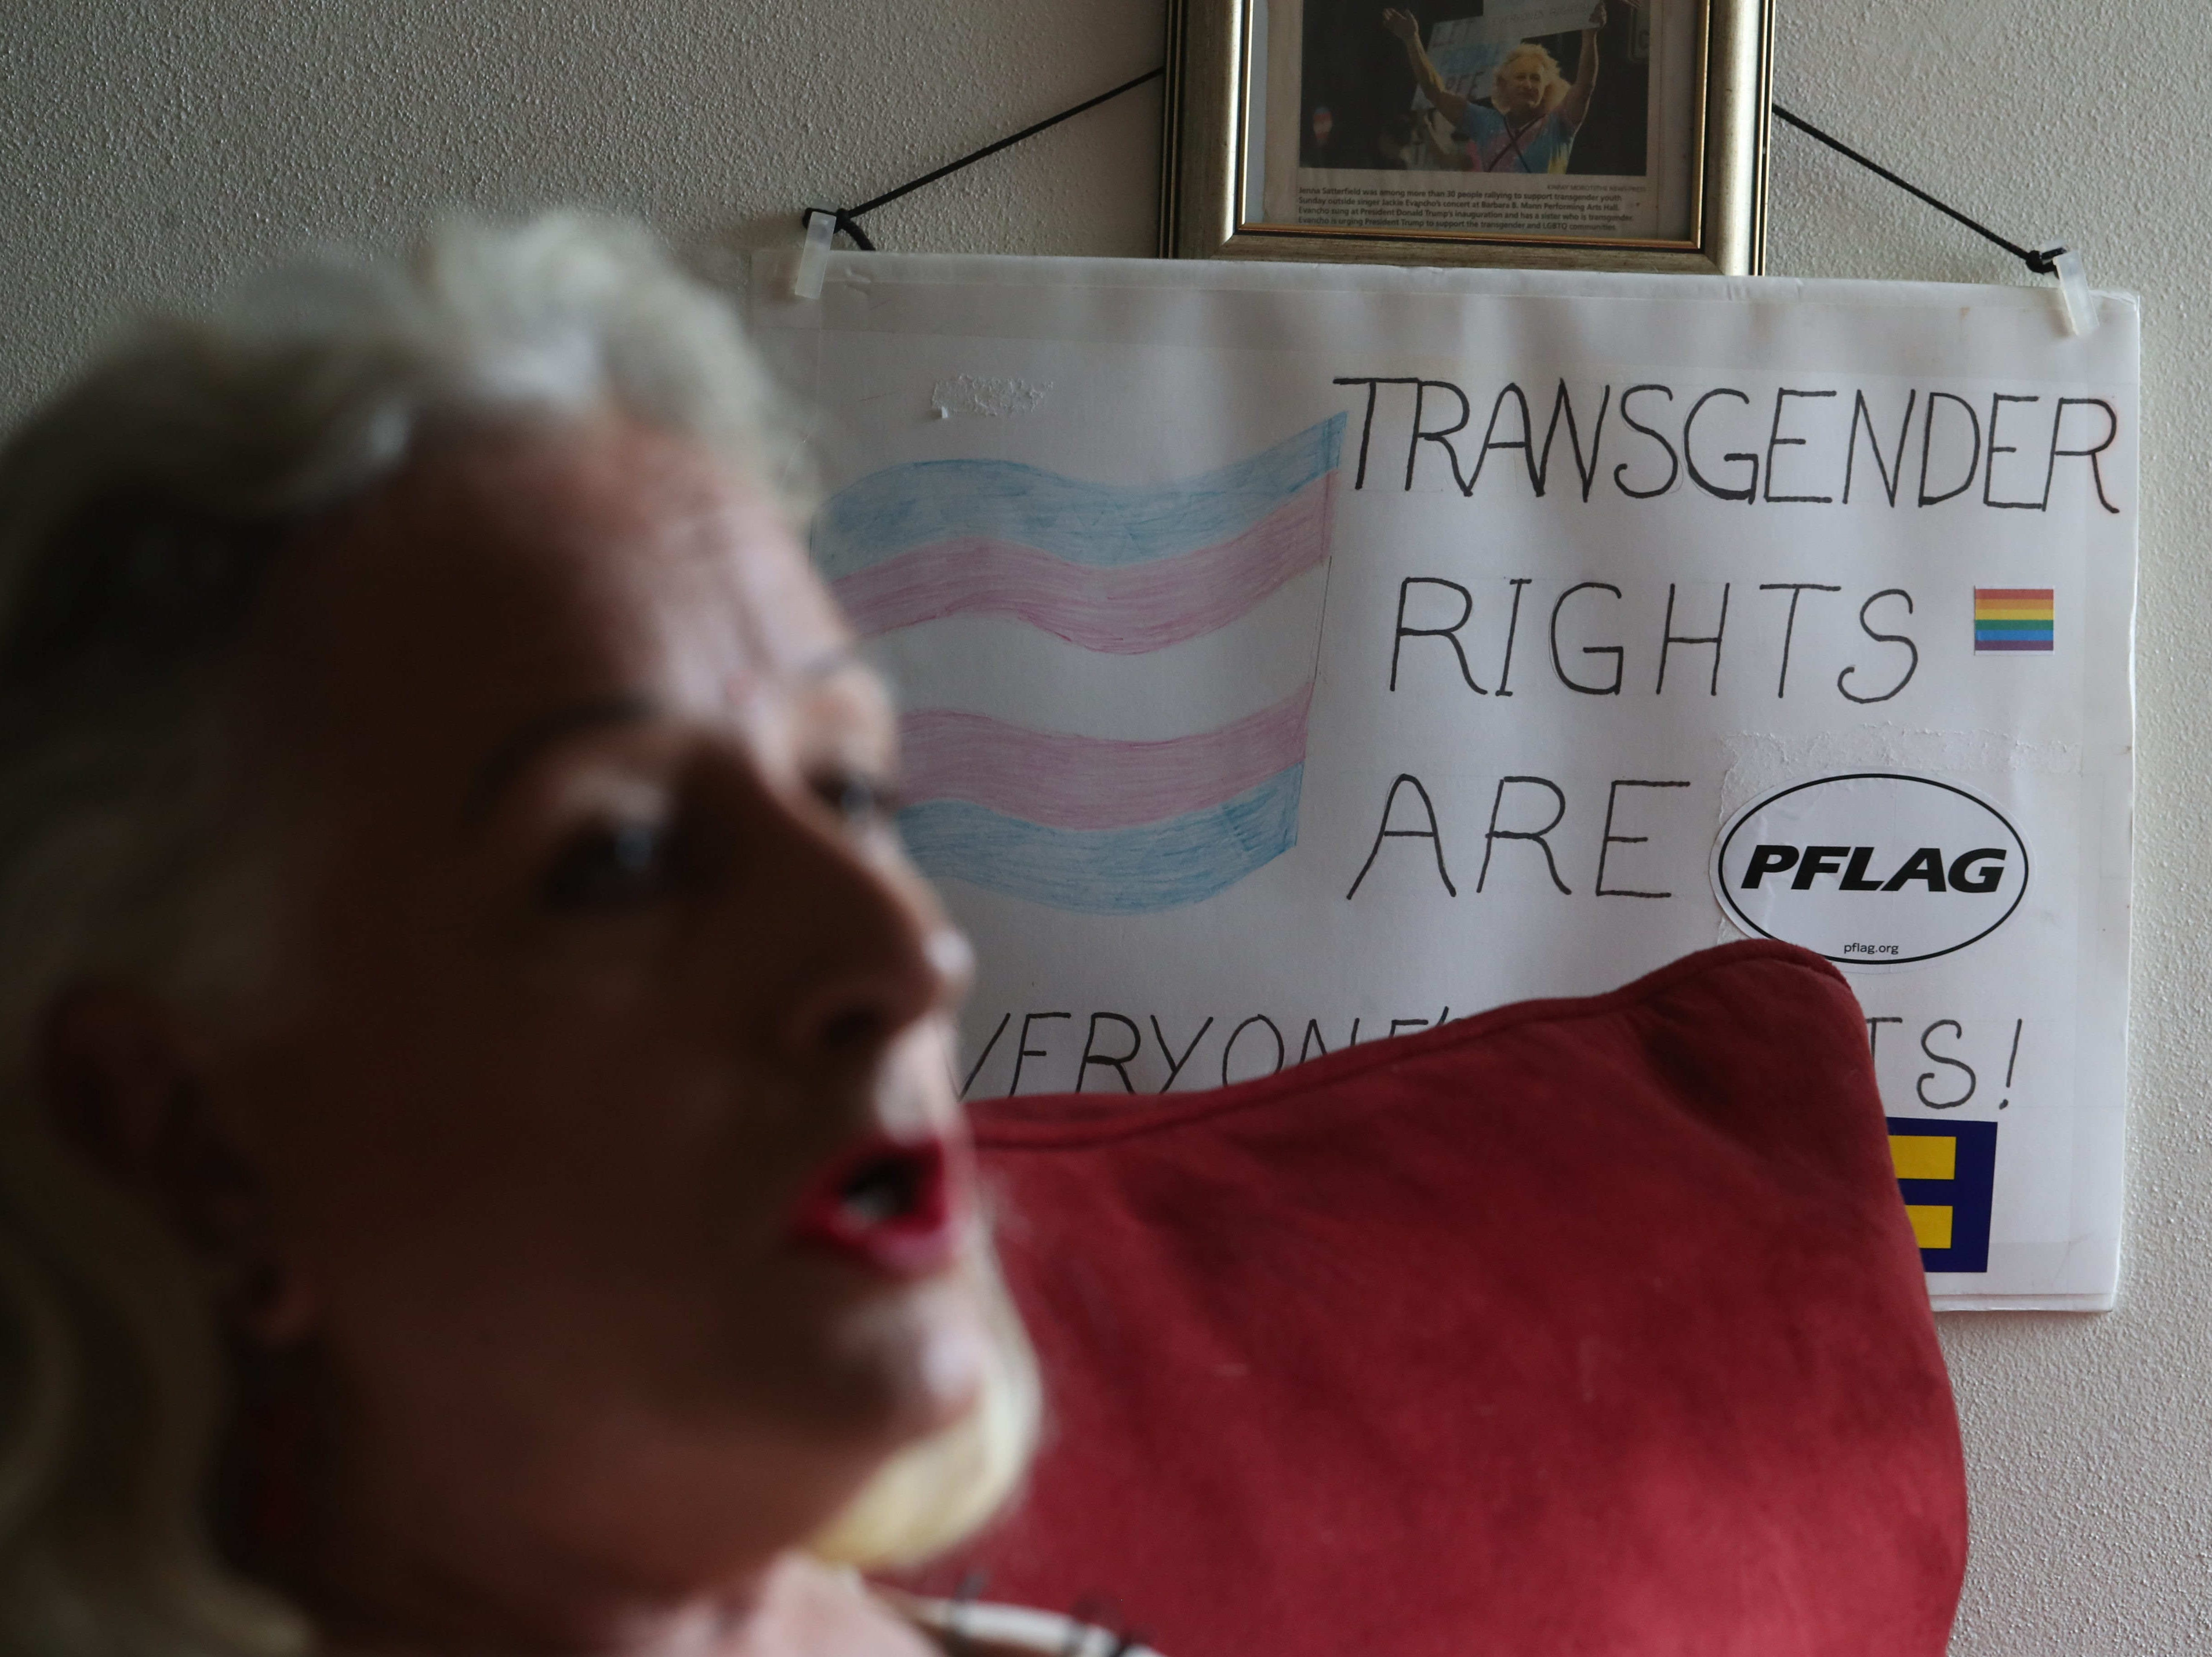 A day in the lives three Southwest Florida residents of different ages and stages in their gender transitions.